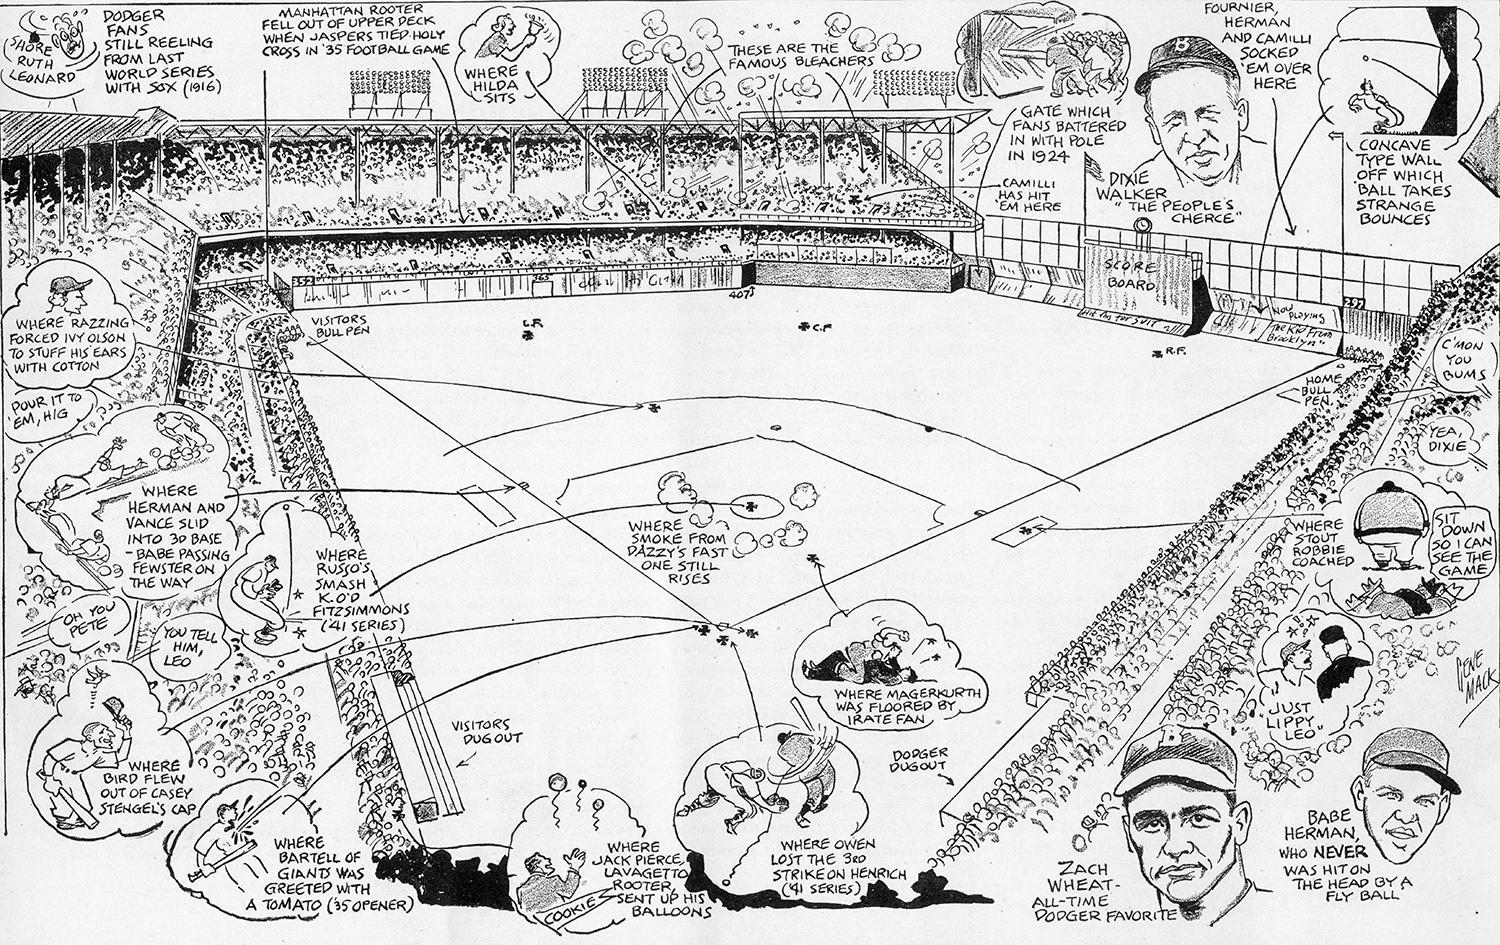 """Gene Mack was a cartoonist for the <em>Boston Globe</em> for over 35 years. Pictured above, his depiction of the Brooklyn Dodgers' Ebbets Field. <a href=""""https://collection.baseballhall.org/PASTIME/gene-mack-cartoon-collection-1927-1950"""">PASTIME</a>"""